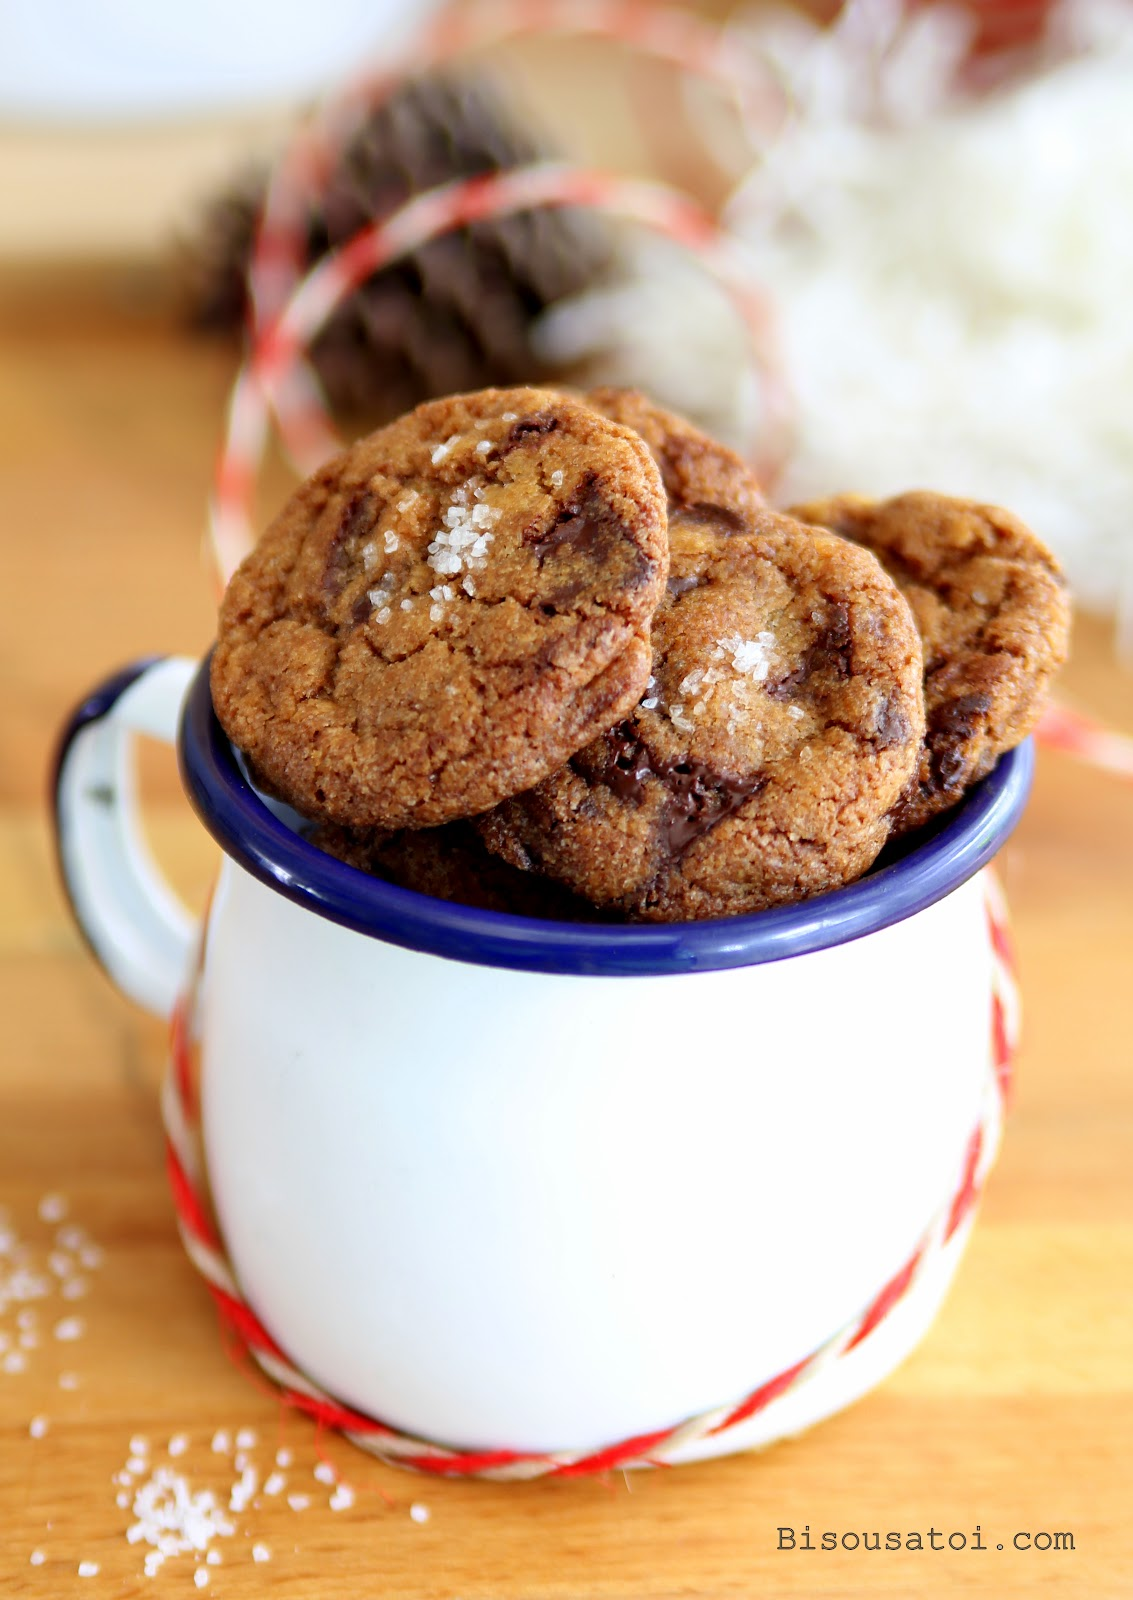 Bittersweet Chocolate Chip Cookies With Sea Salt Bisous A Toi